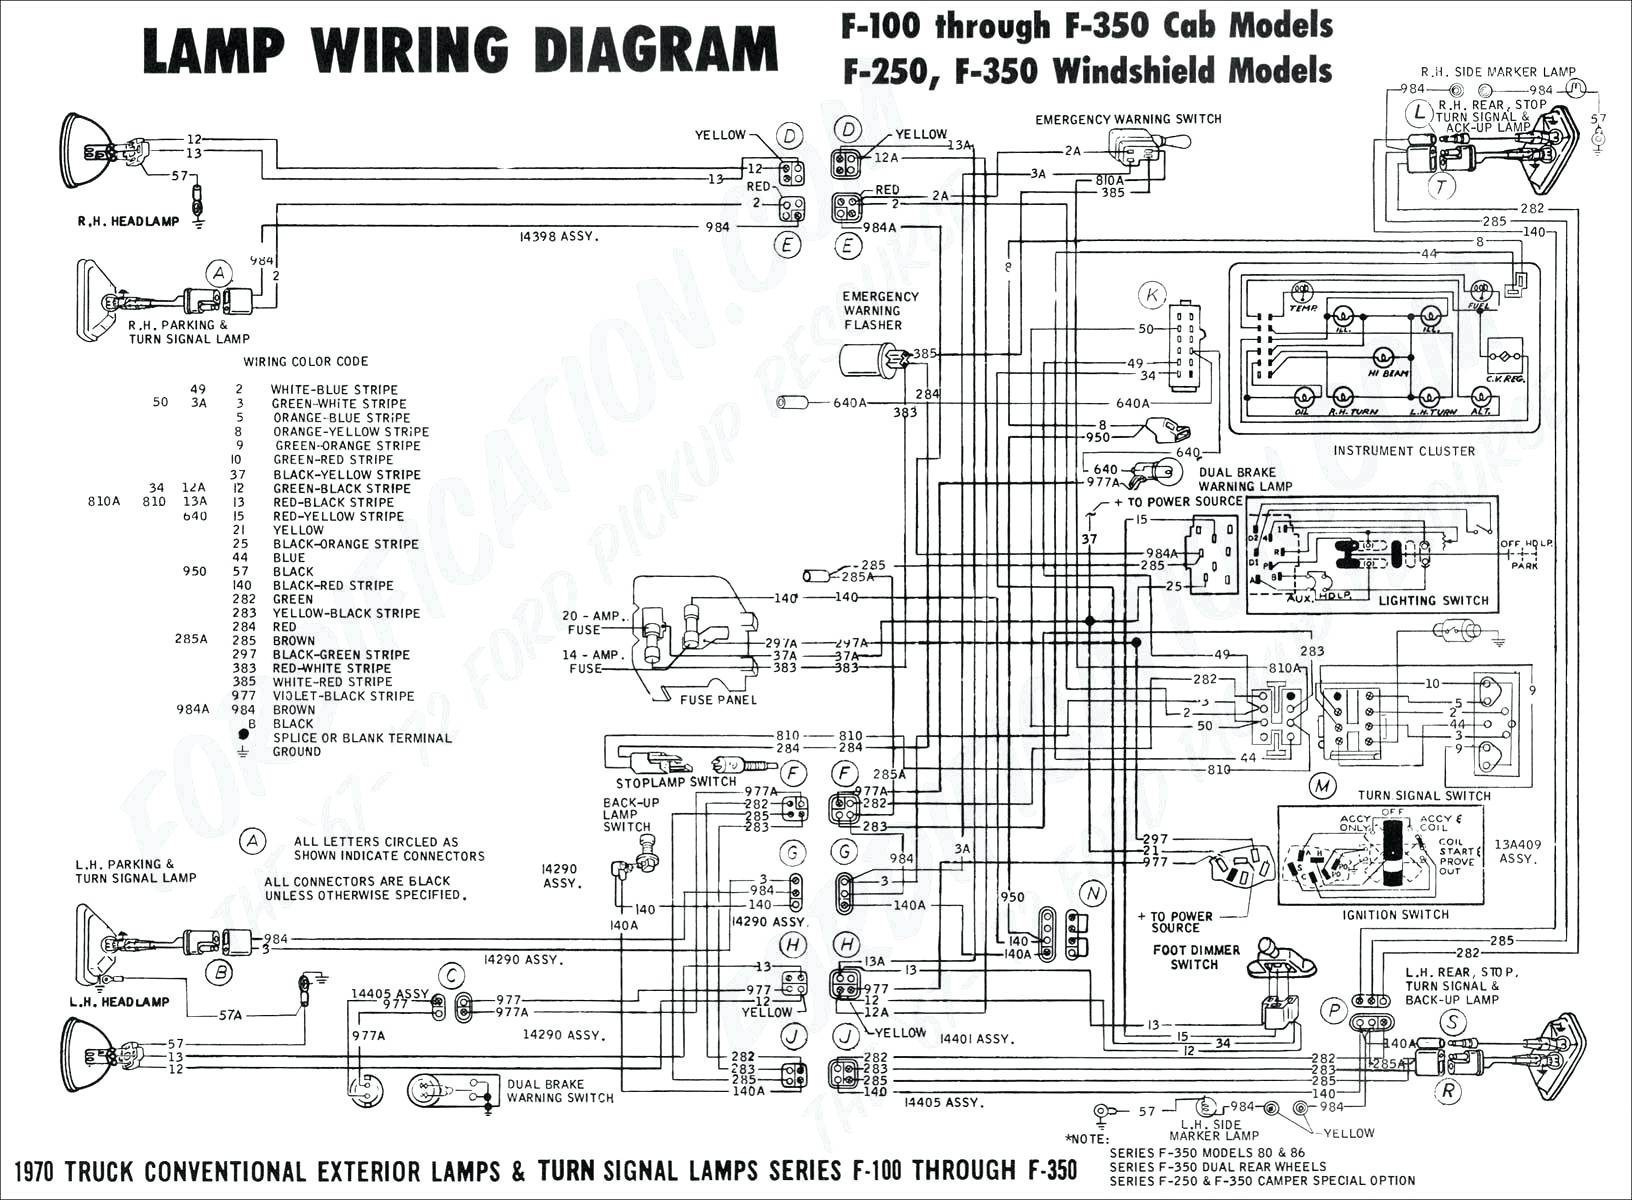 Reese Trailer Wiring Diagram - Detailed Wiring Diagram - Reese Trailer Wiring Diagram